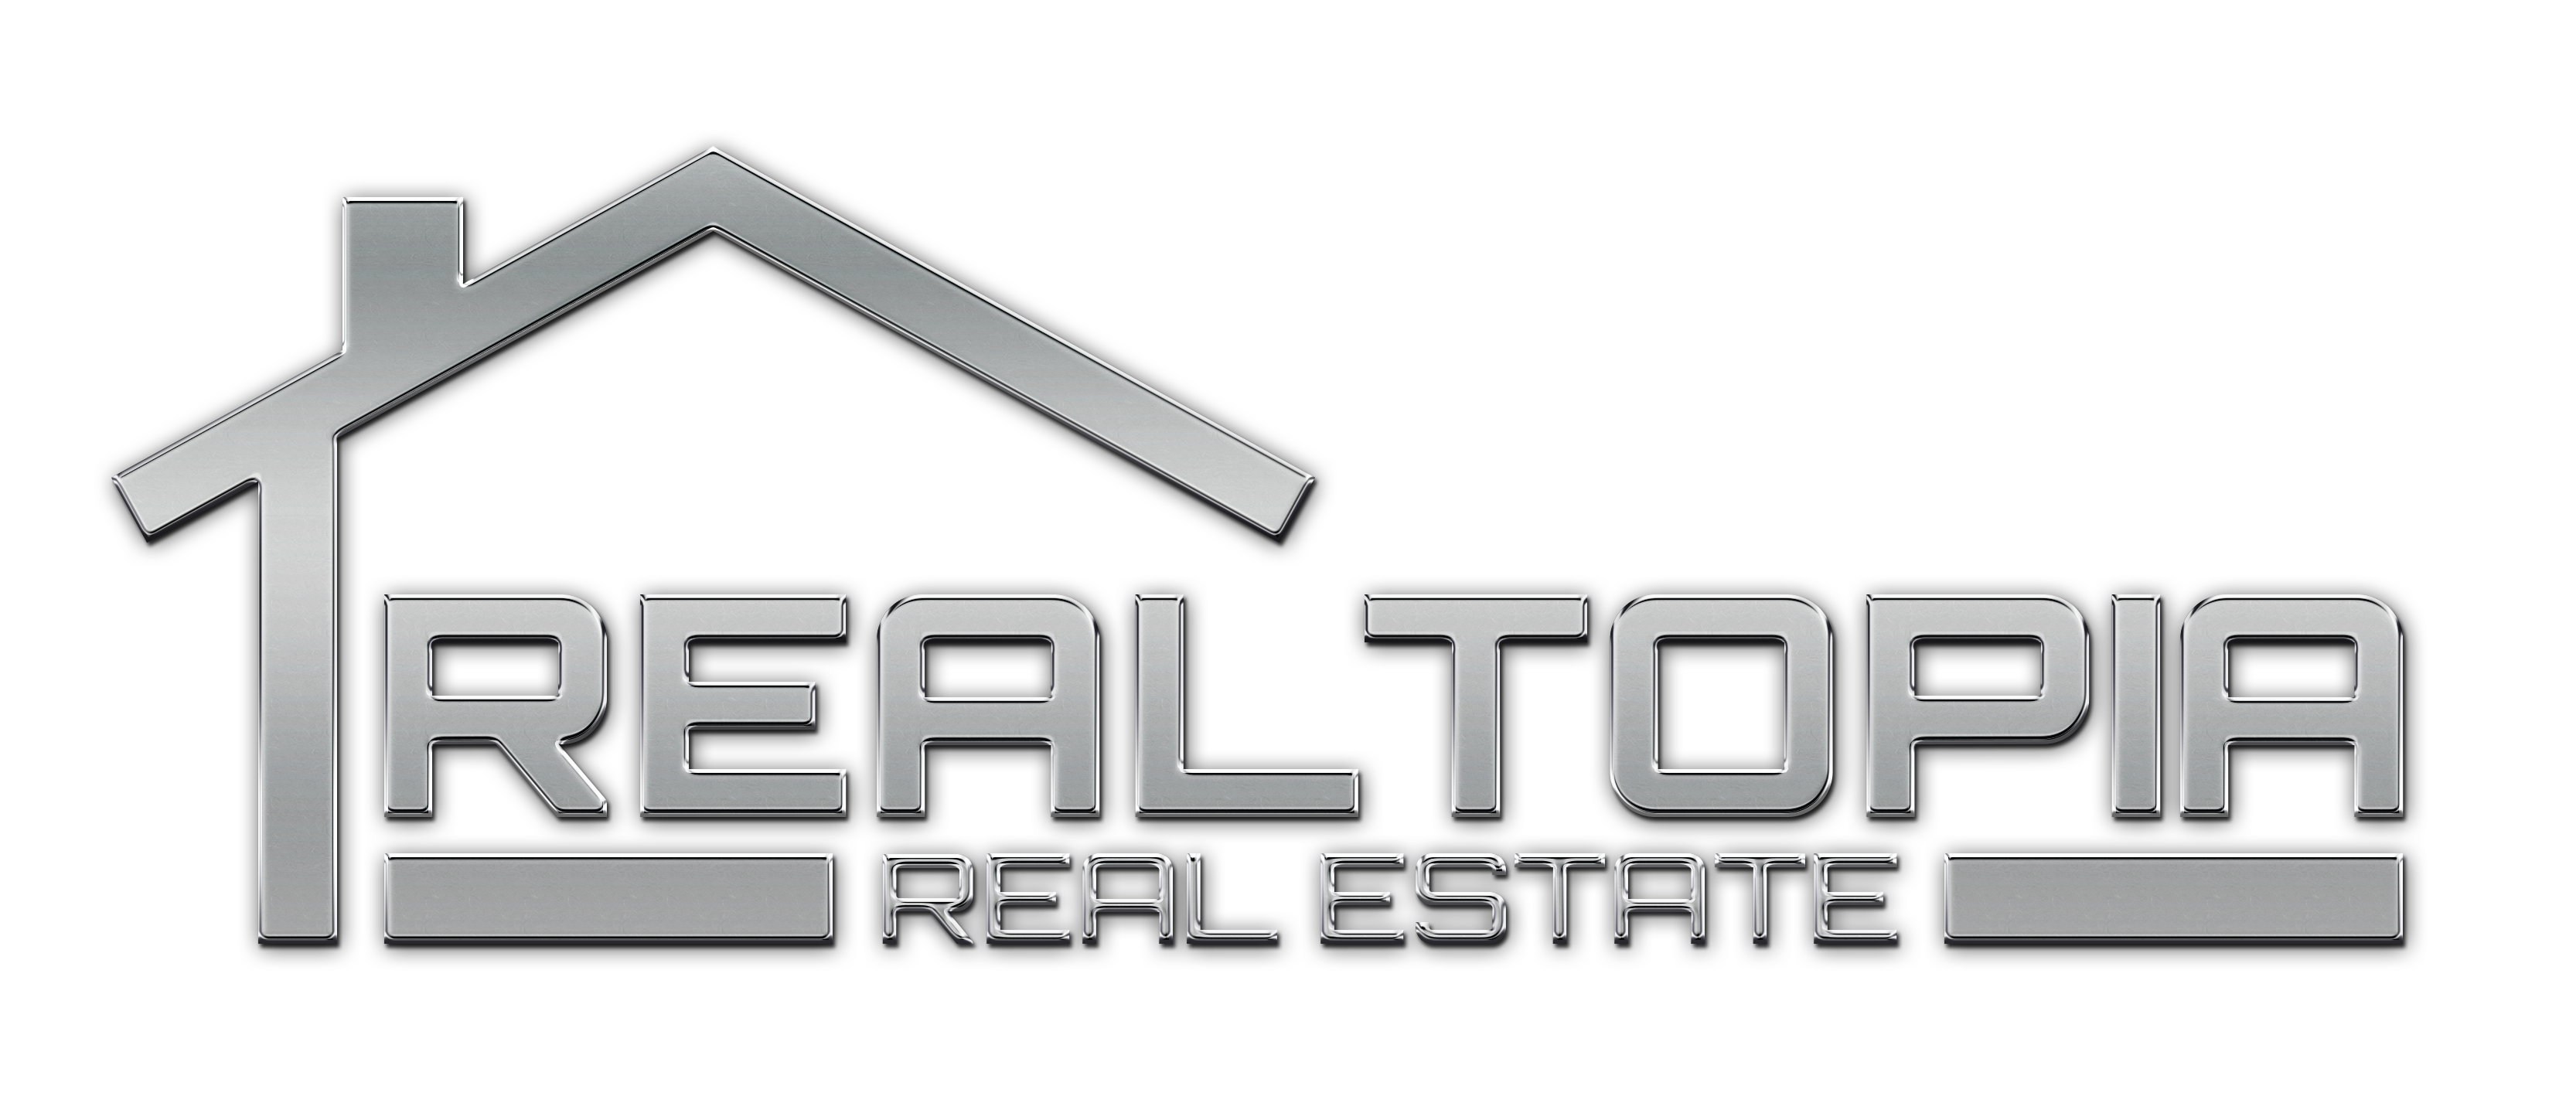 Realtopia Real Estate